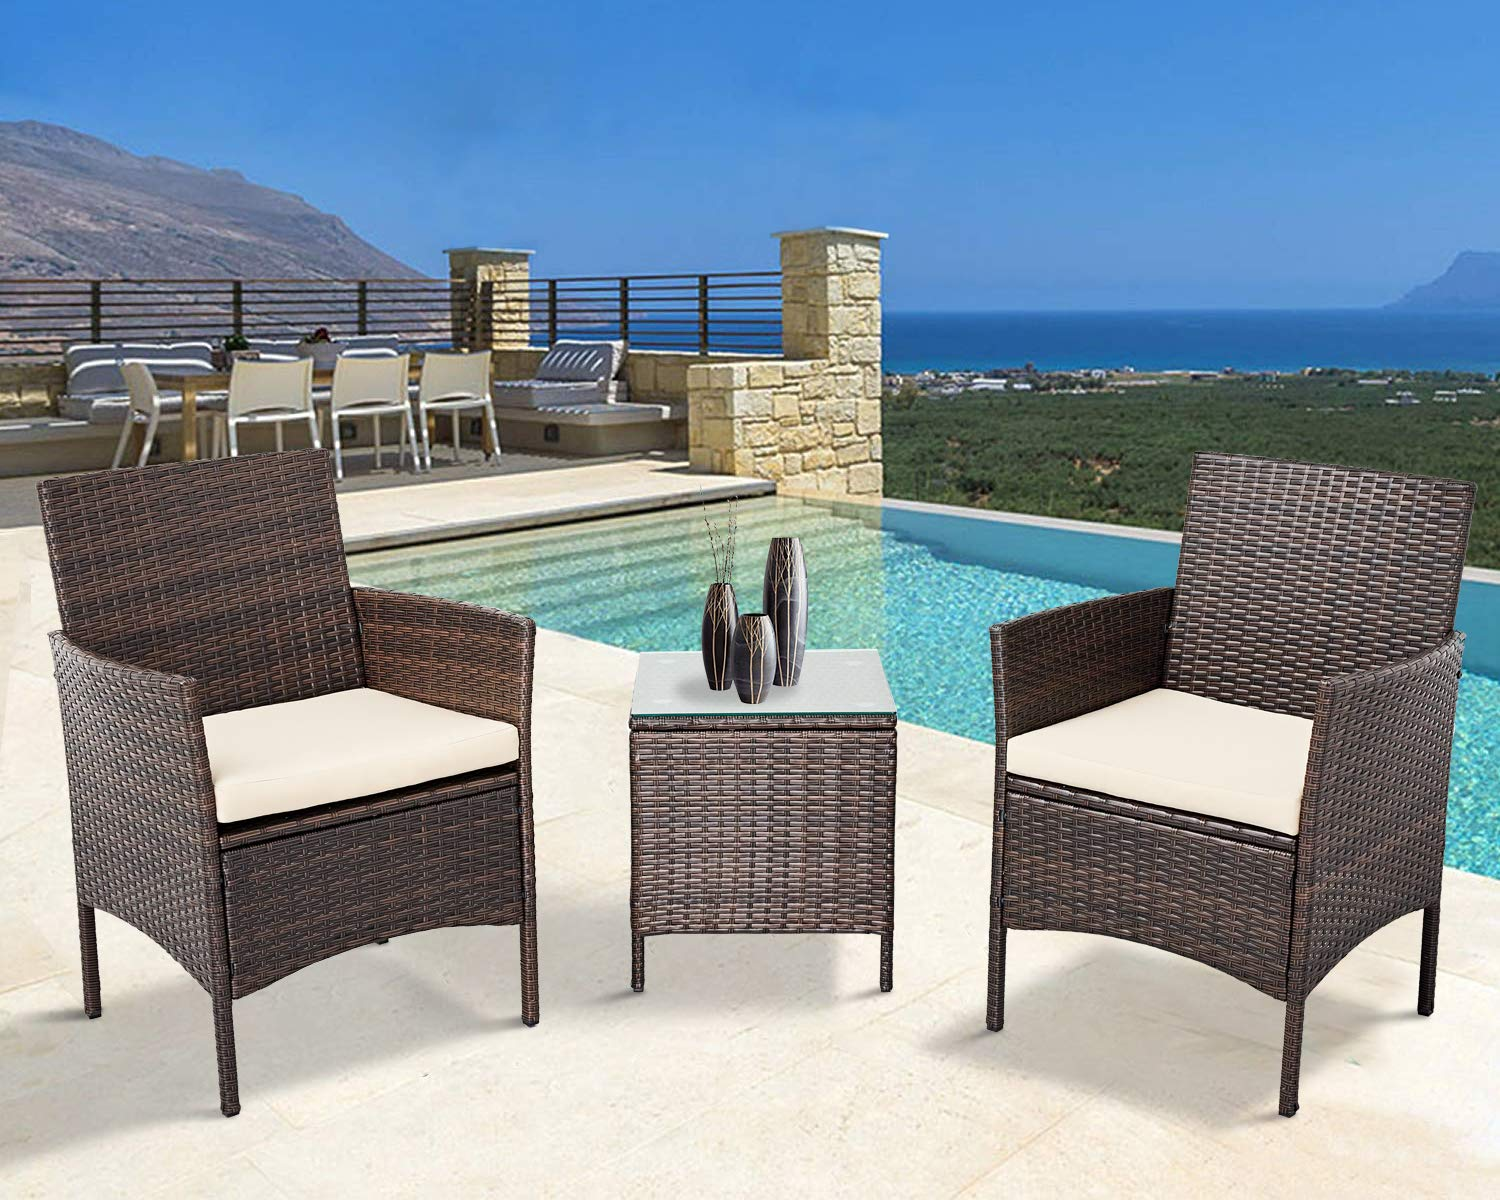 Oakmont Outdoor 3-Piece Rattan Wicker Bistro Set Brown Conversation Furniture 2 Chairs with Glass Top Coffee Table Sets Beige Cushions Backyard, Pool, Garden